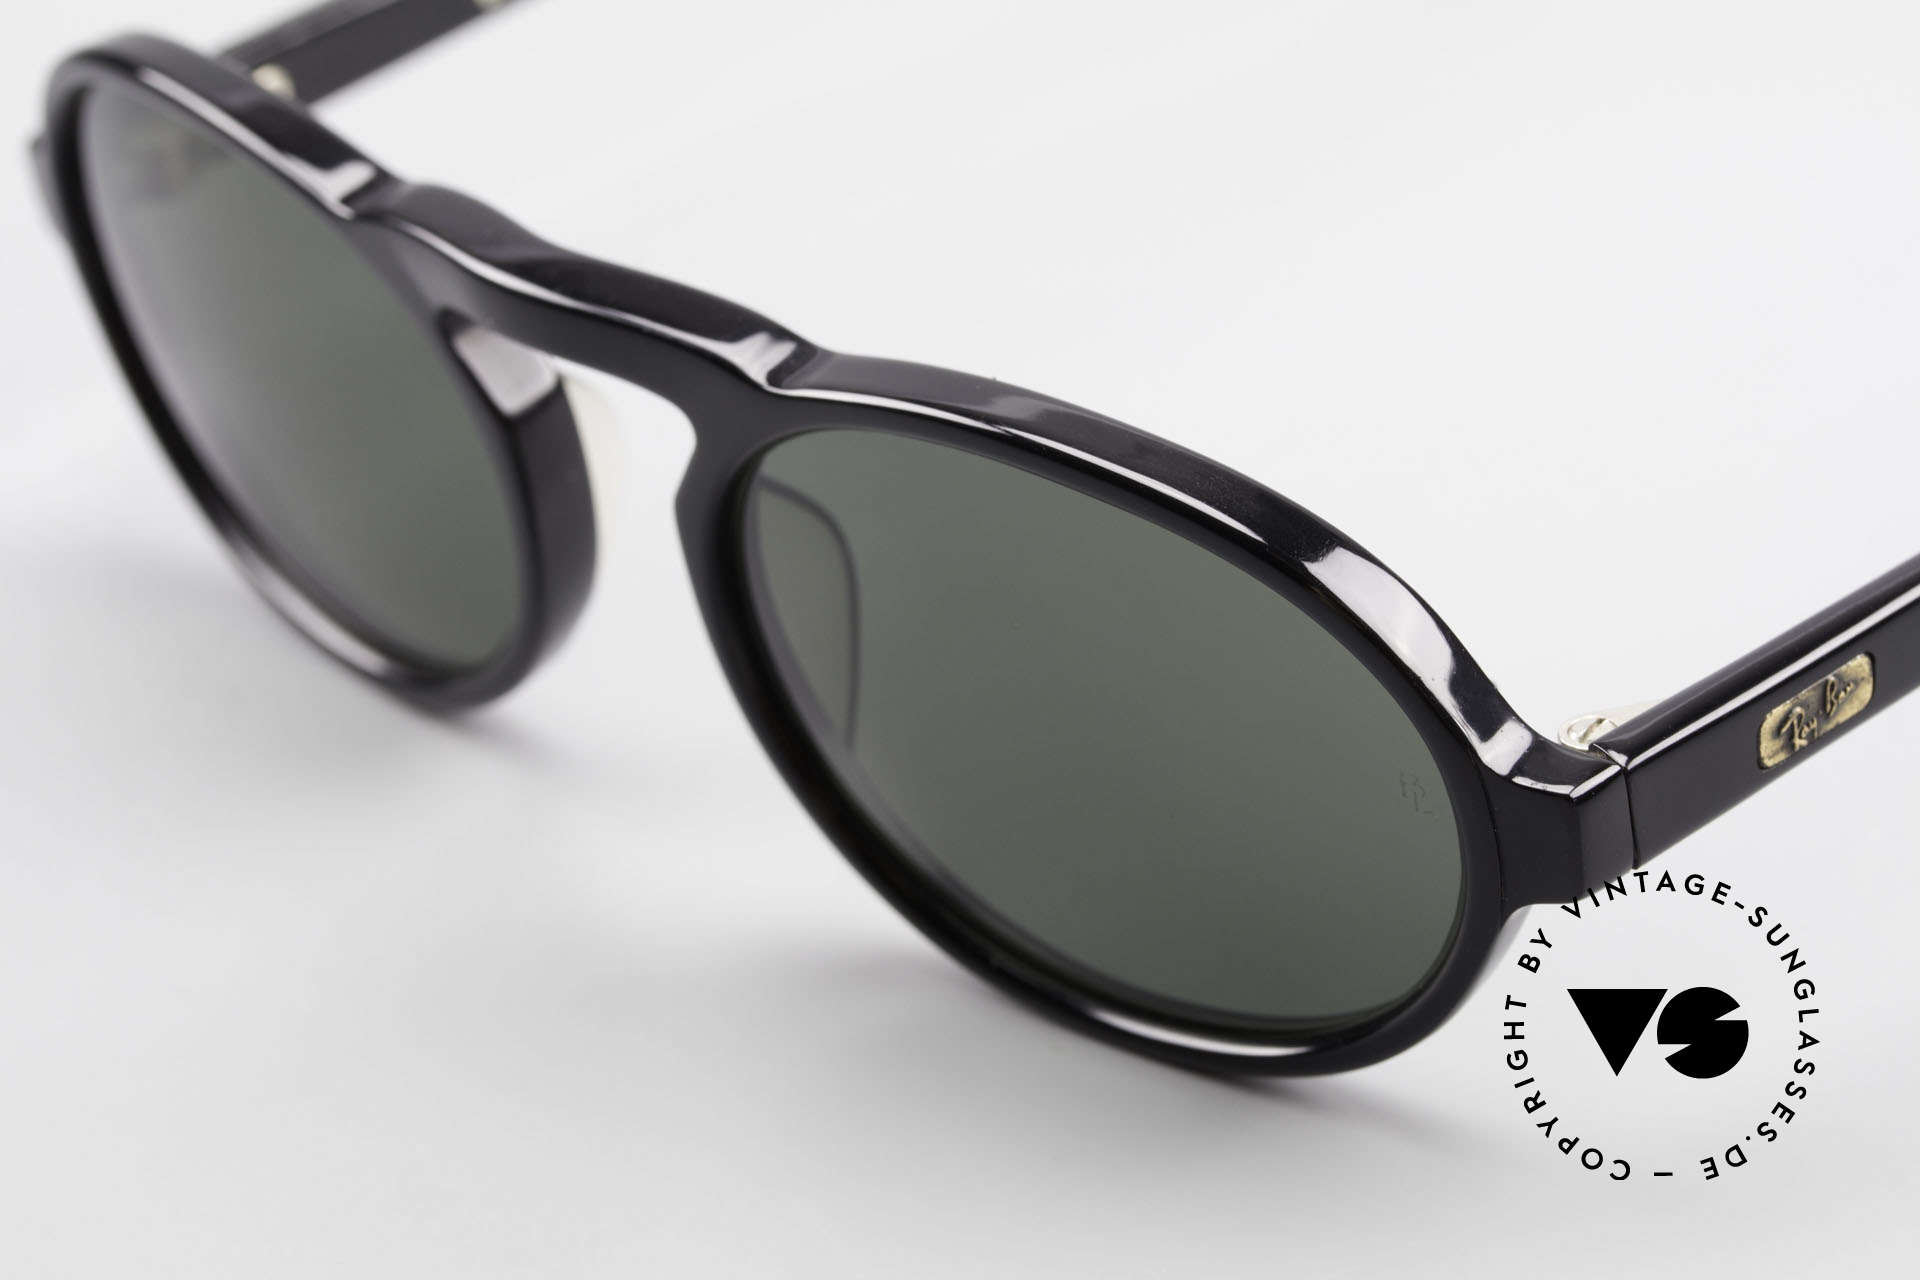 Ray Ban Gatsby Style 3 Old Oval USA Ray-Ban Shades, unworn (like all our vintage Ray Ban shades), Made for Men and Women